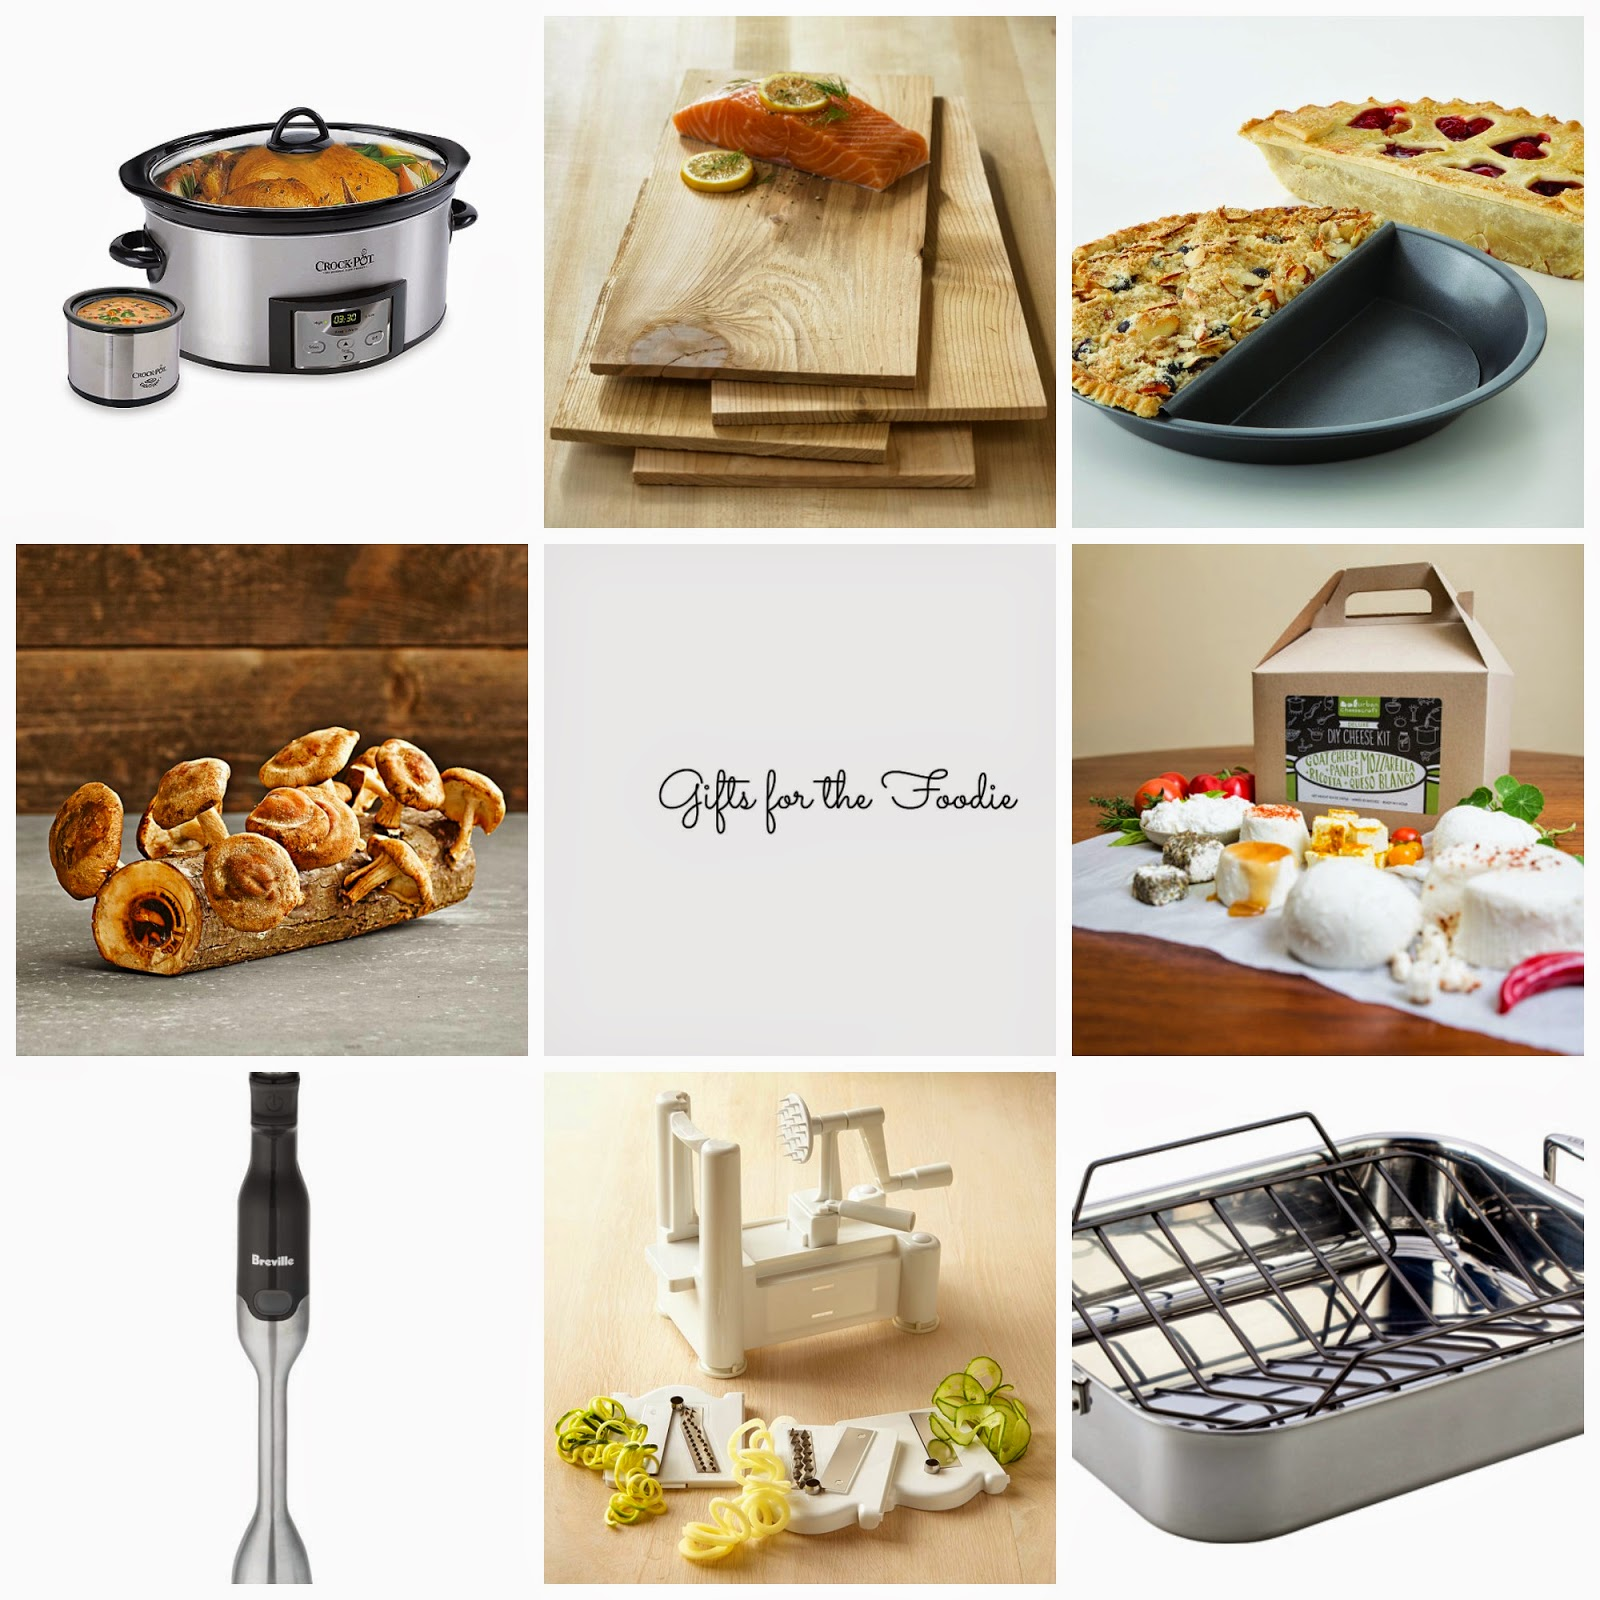 3 Great Foodie Gifts